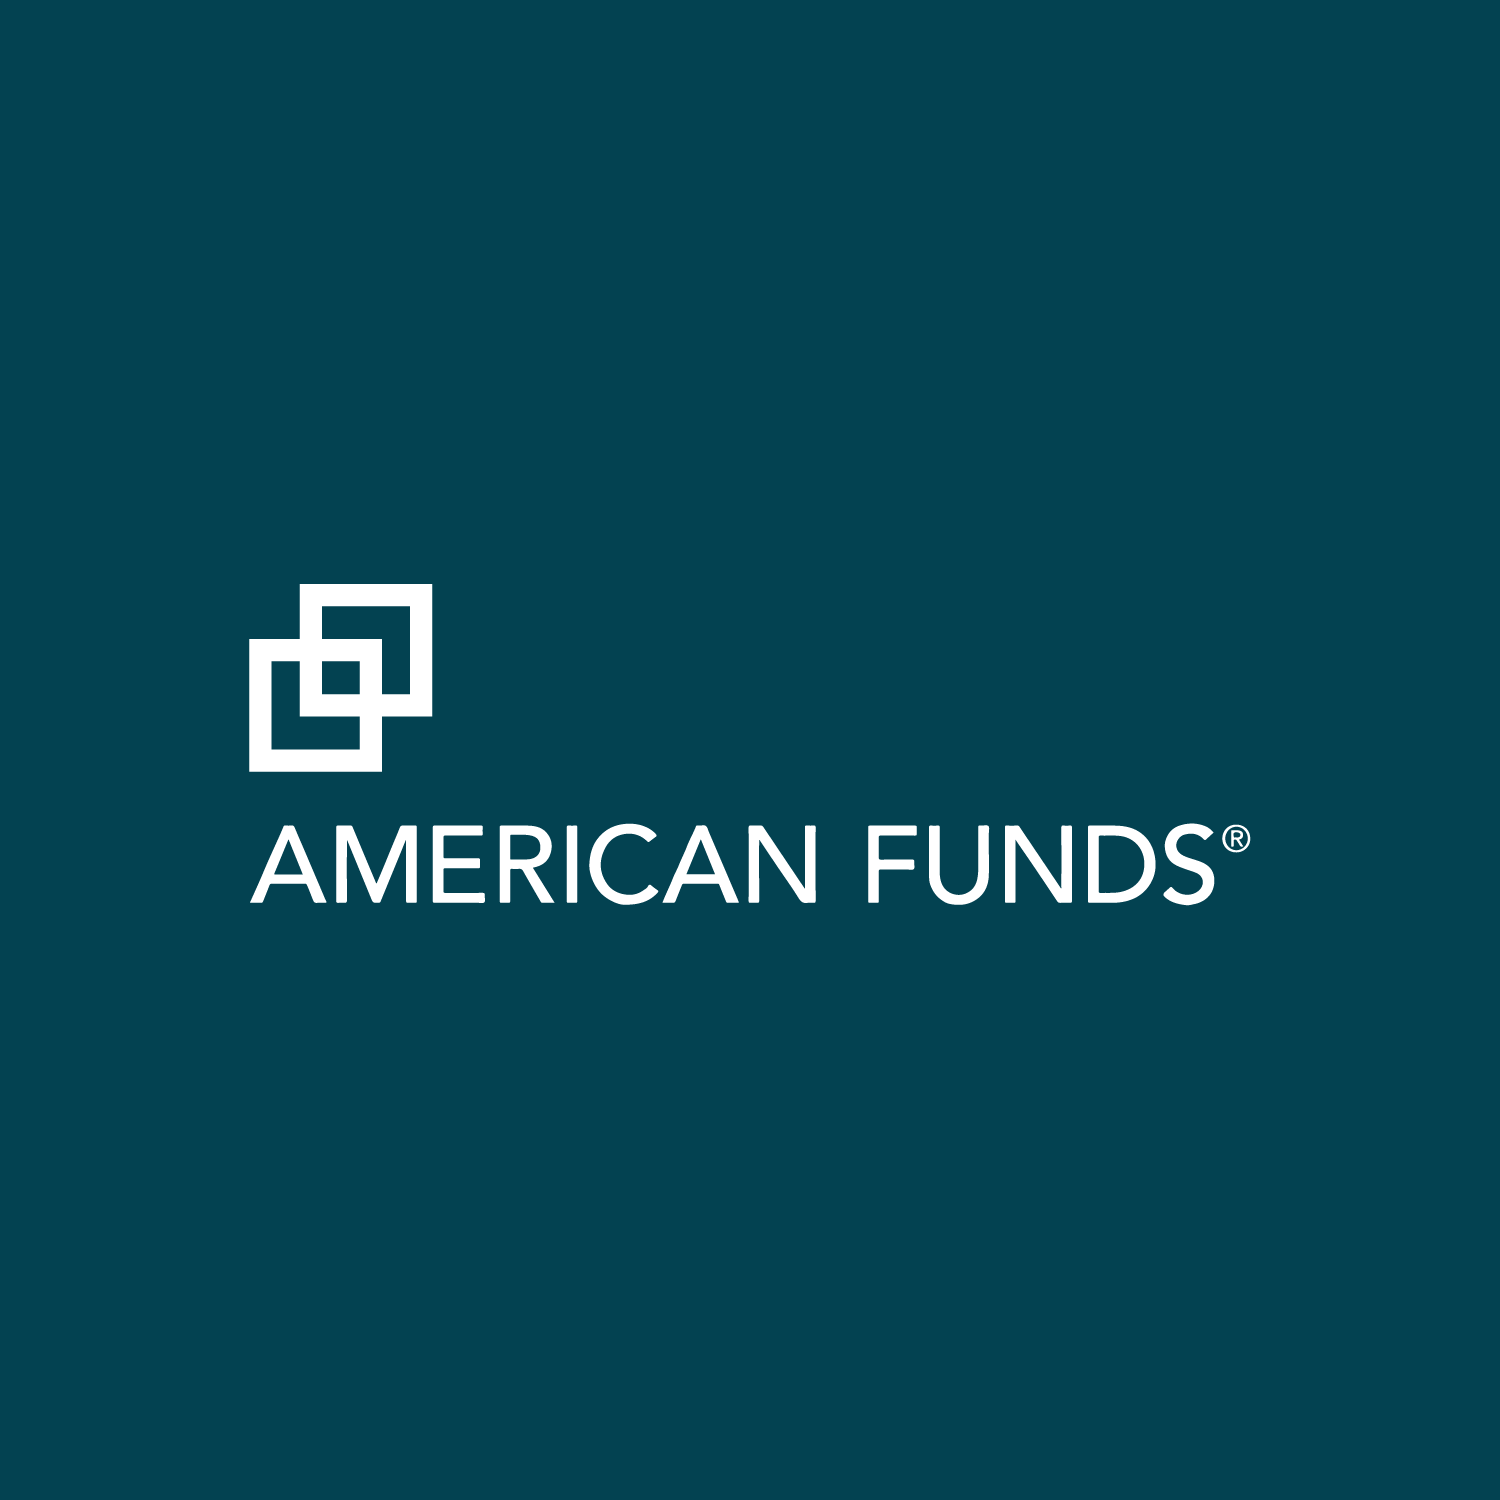 AmericanFunds_1.png